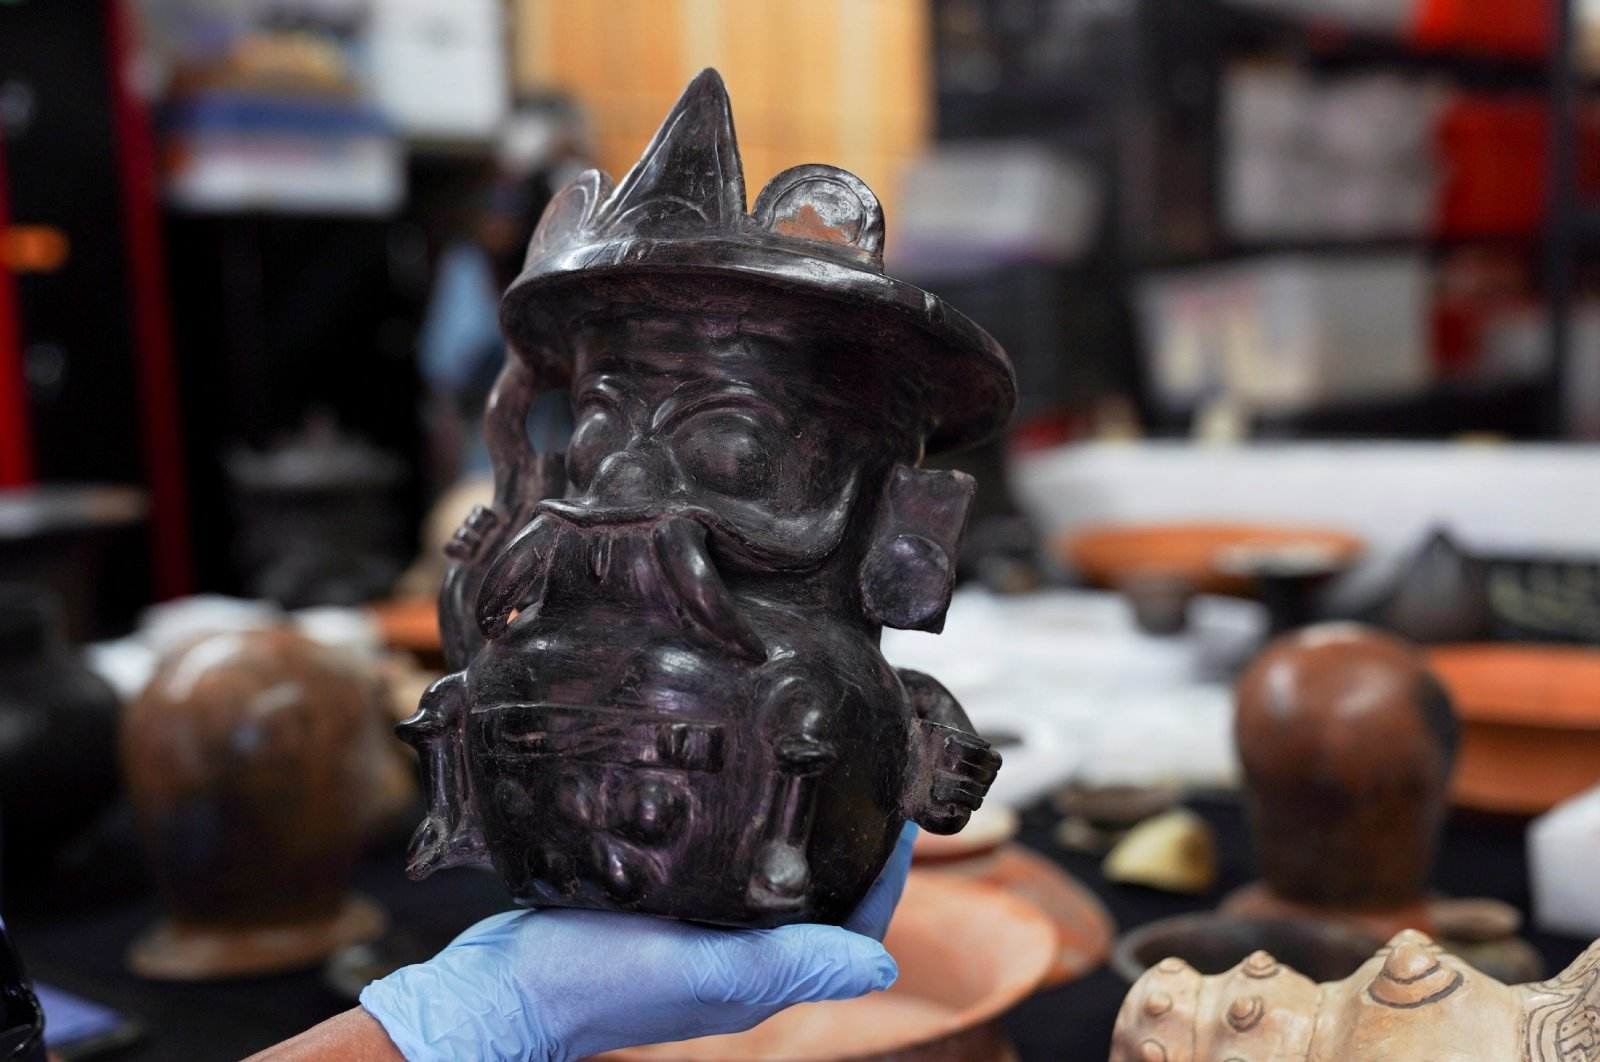 Archaeologist Sergio Gomez displays a pot shaped in the image of storm god Tlaloc, found inside a 2,000-year-old tunnel built under the ornate Feathered Serpent Pyramid, in the ruins of Teotihuacan, in San Juan Teotihuacan, Mexico, Aug. 12, 2021. (Reuters Photo)